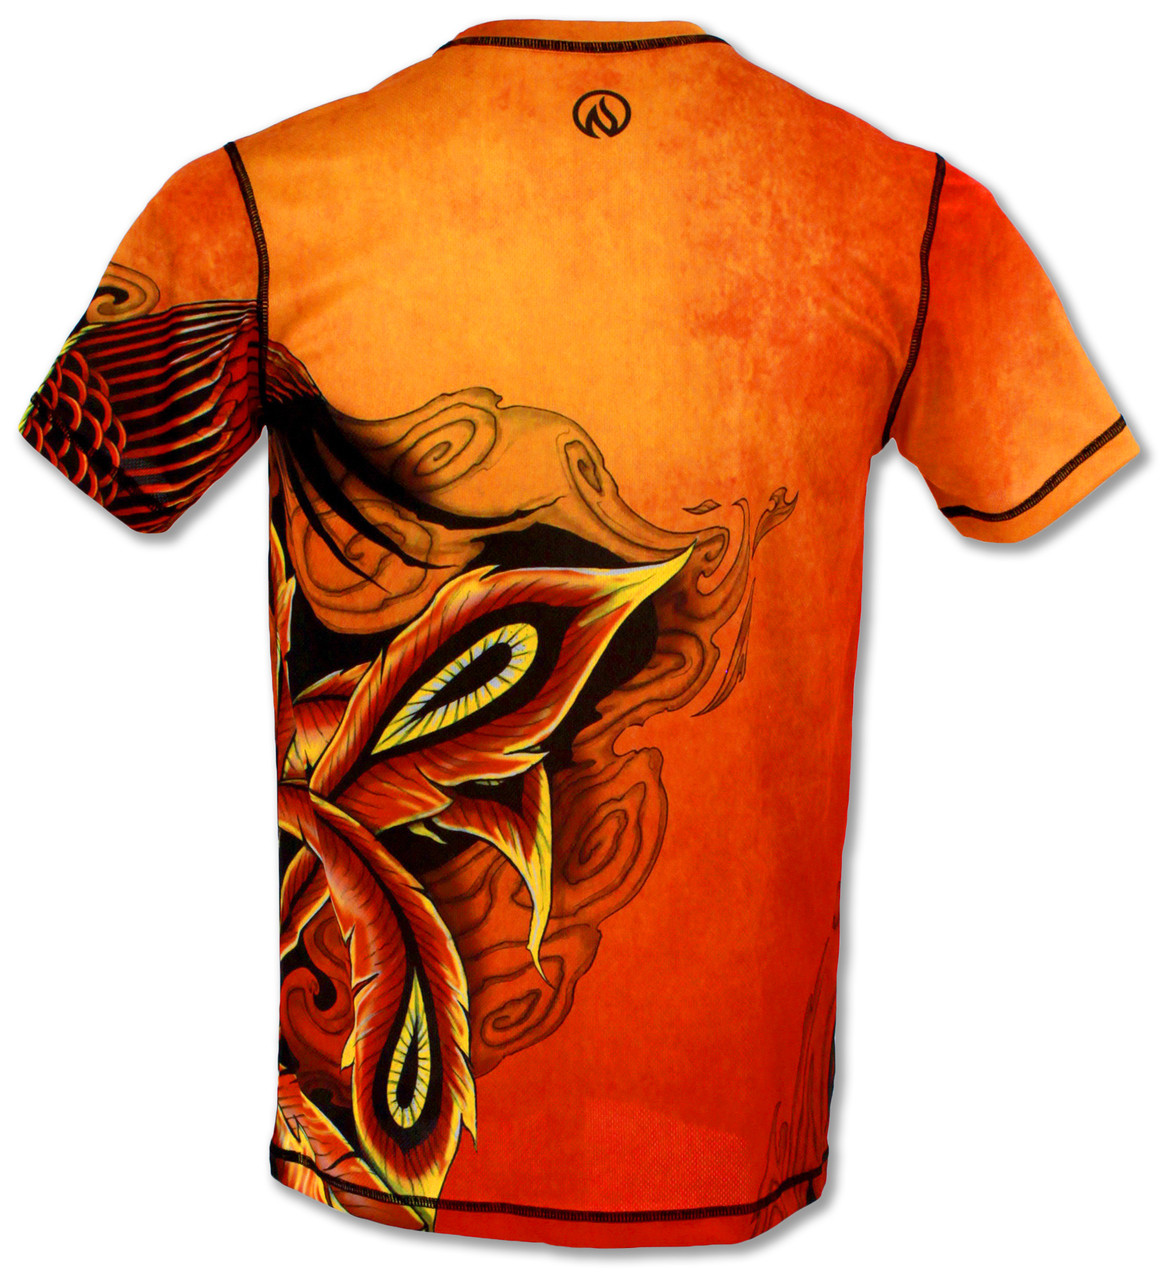 INKnBURN Men's Phoenix Tech Shirt Back